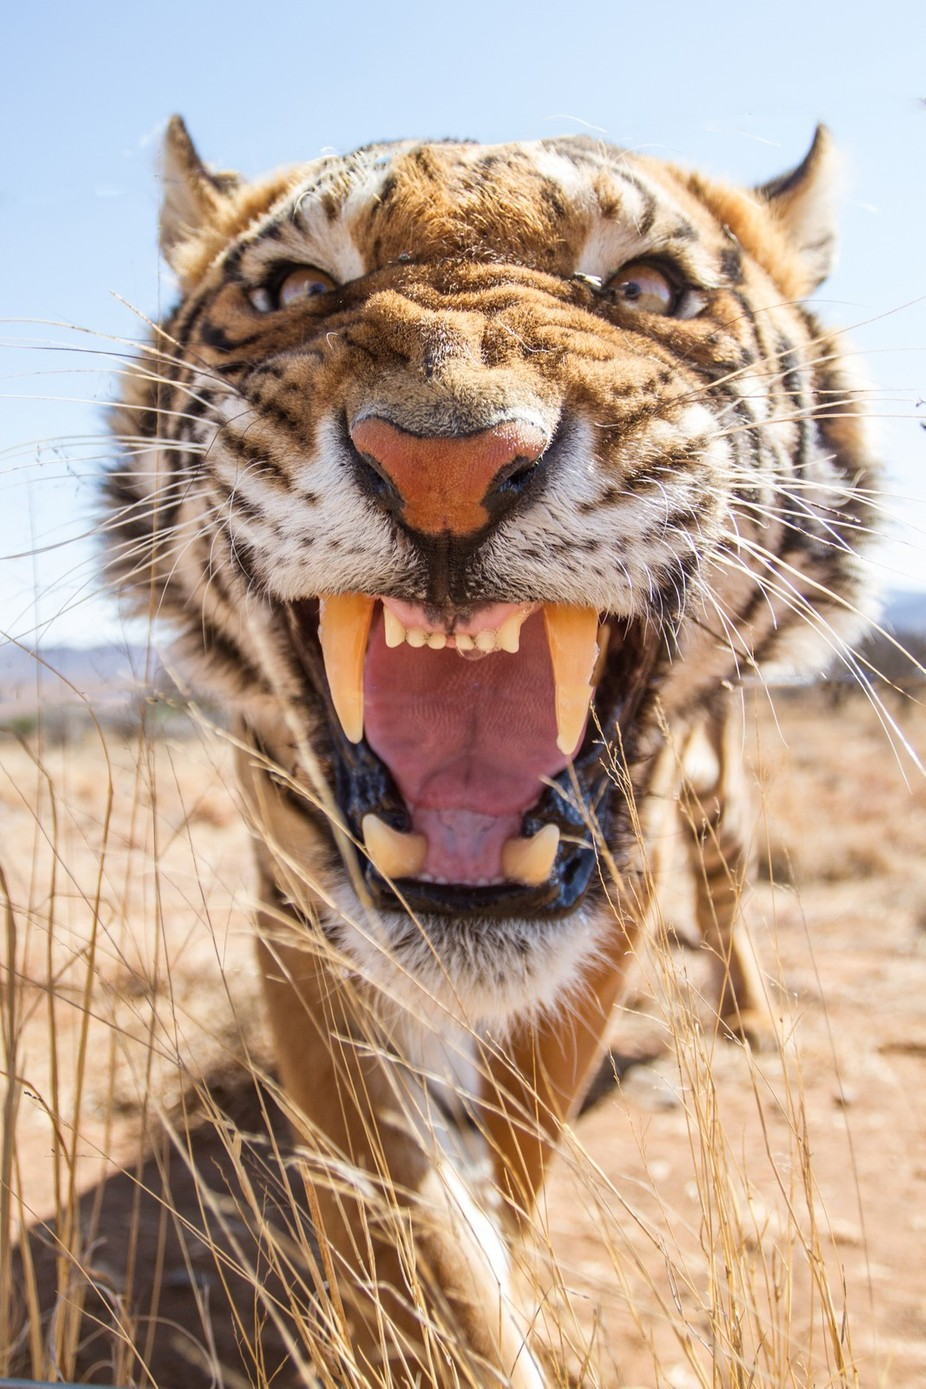 close encounter by saboytjie - Explore Africa Photo Contest